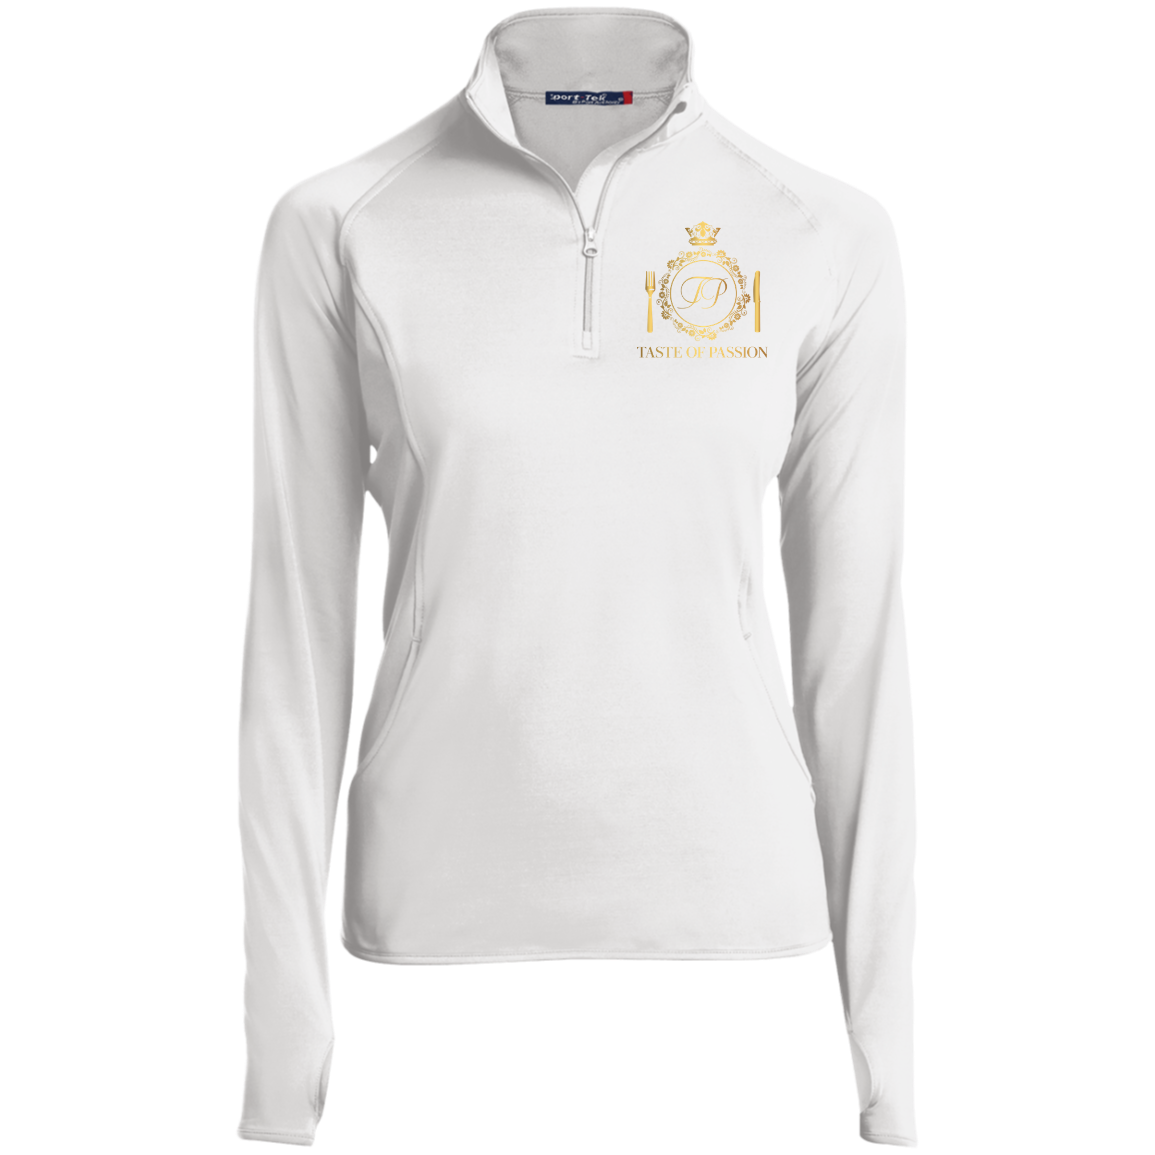 Taste of Passion Women's 1/2 Zip Performance Pullover